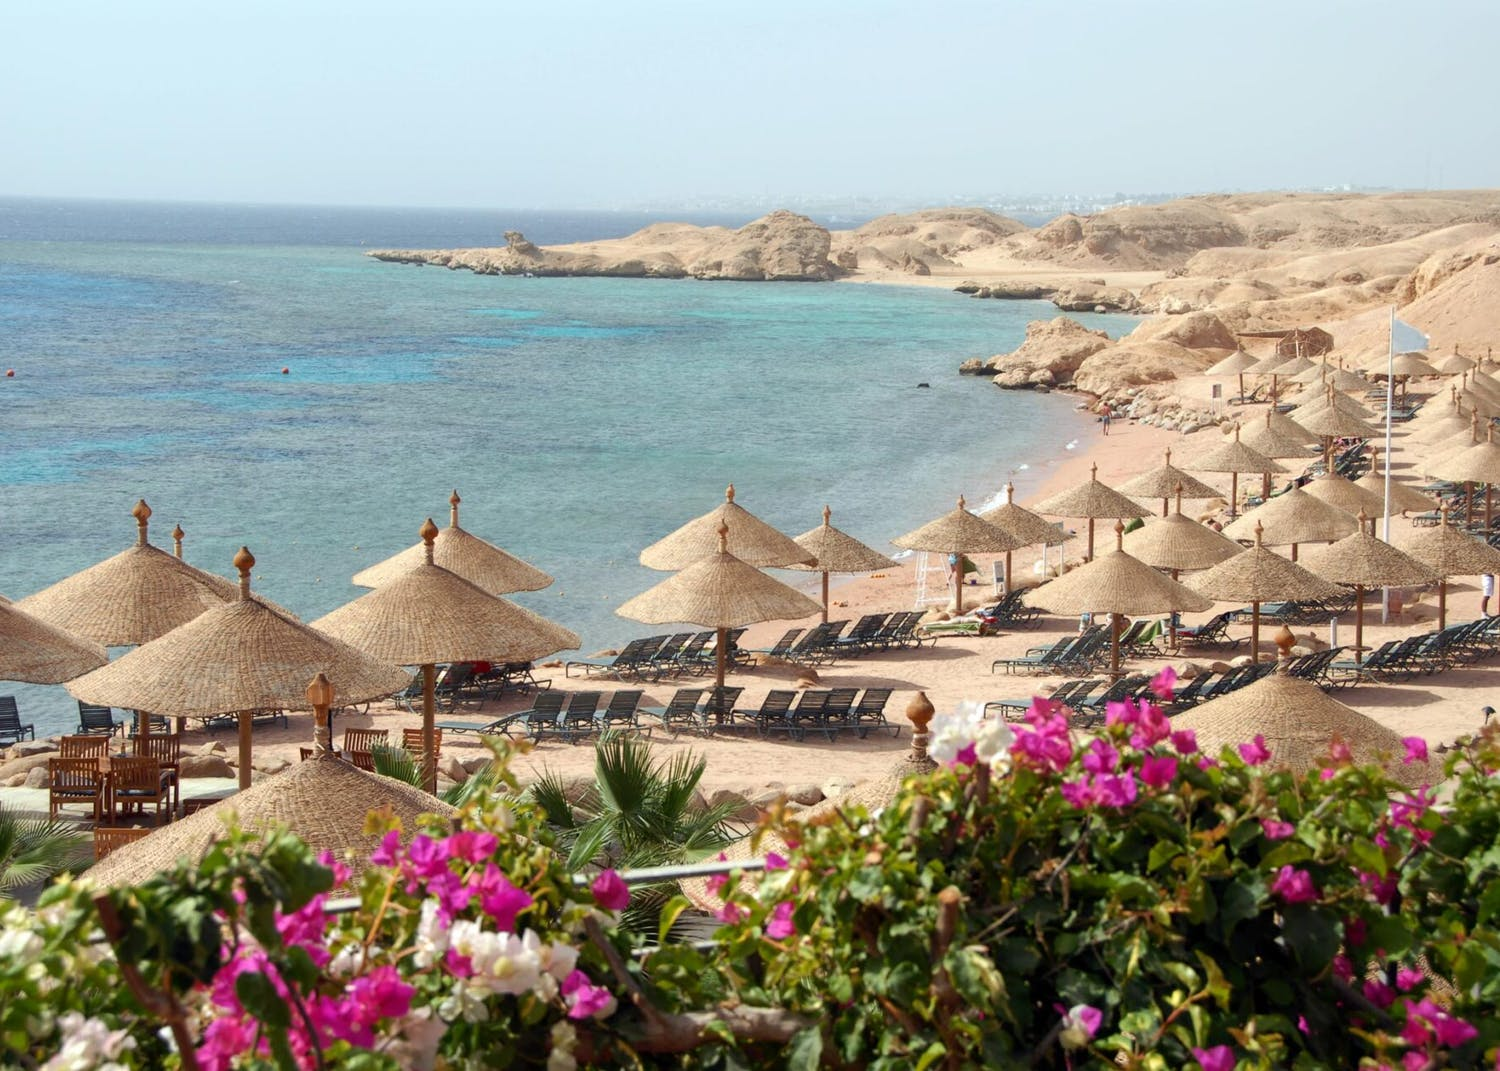 view of Red Sea yacht charter from the Sharm El-Sheikh beach in Egypt